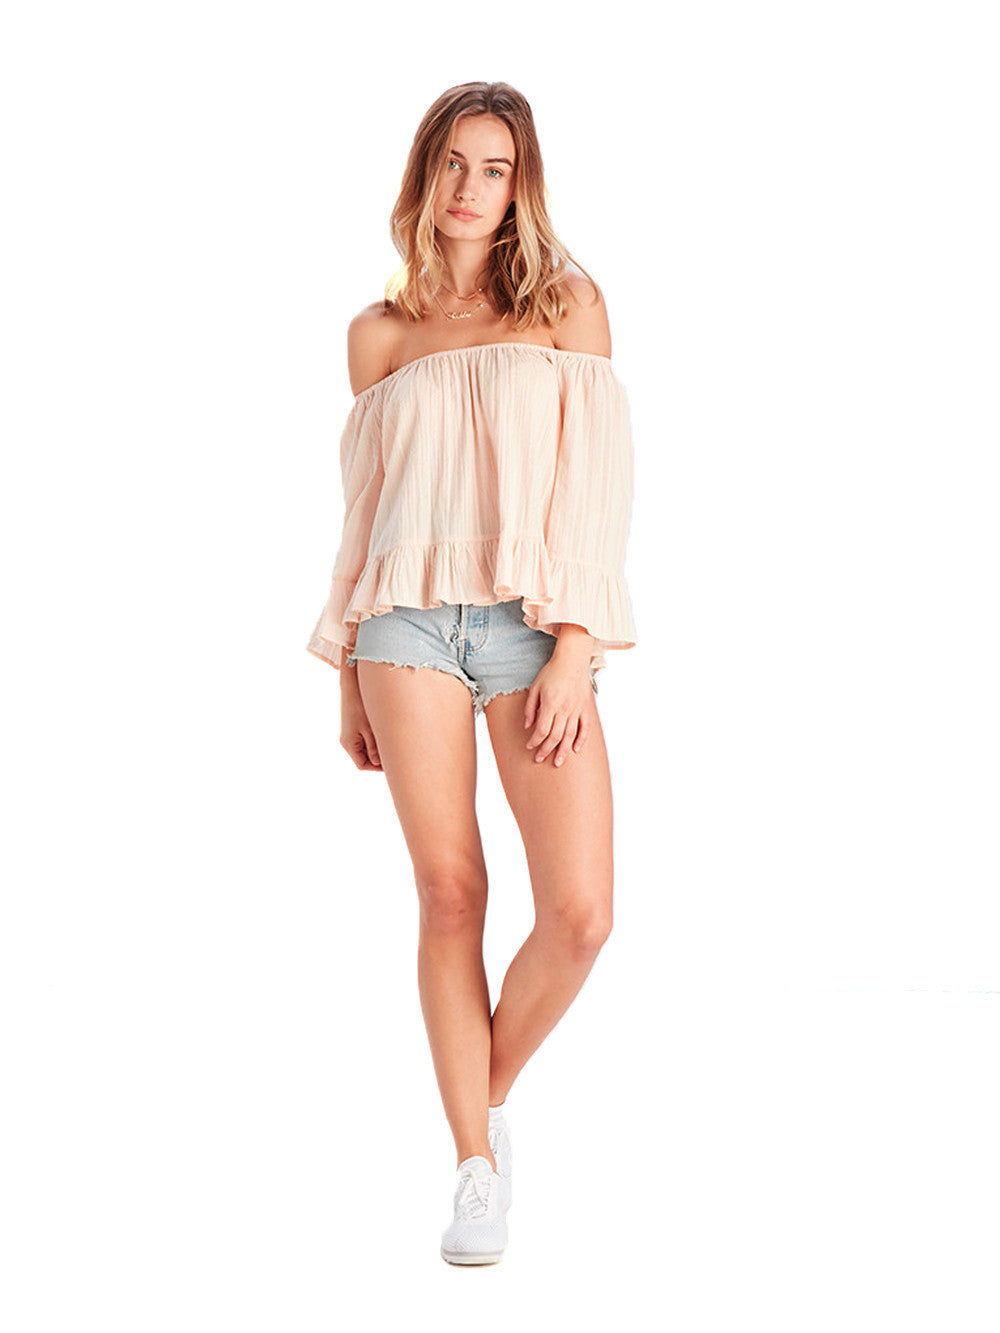 Reckless Girls Womens - Tops - Shirts / Blouses Victoria OS Top Blush